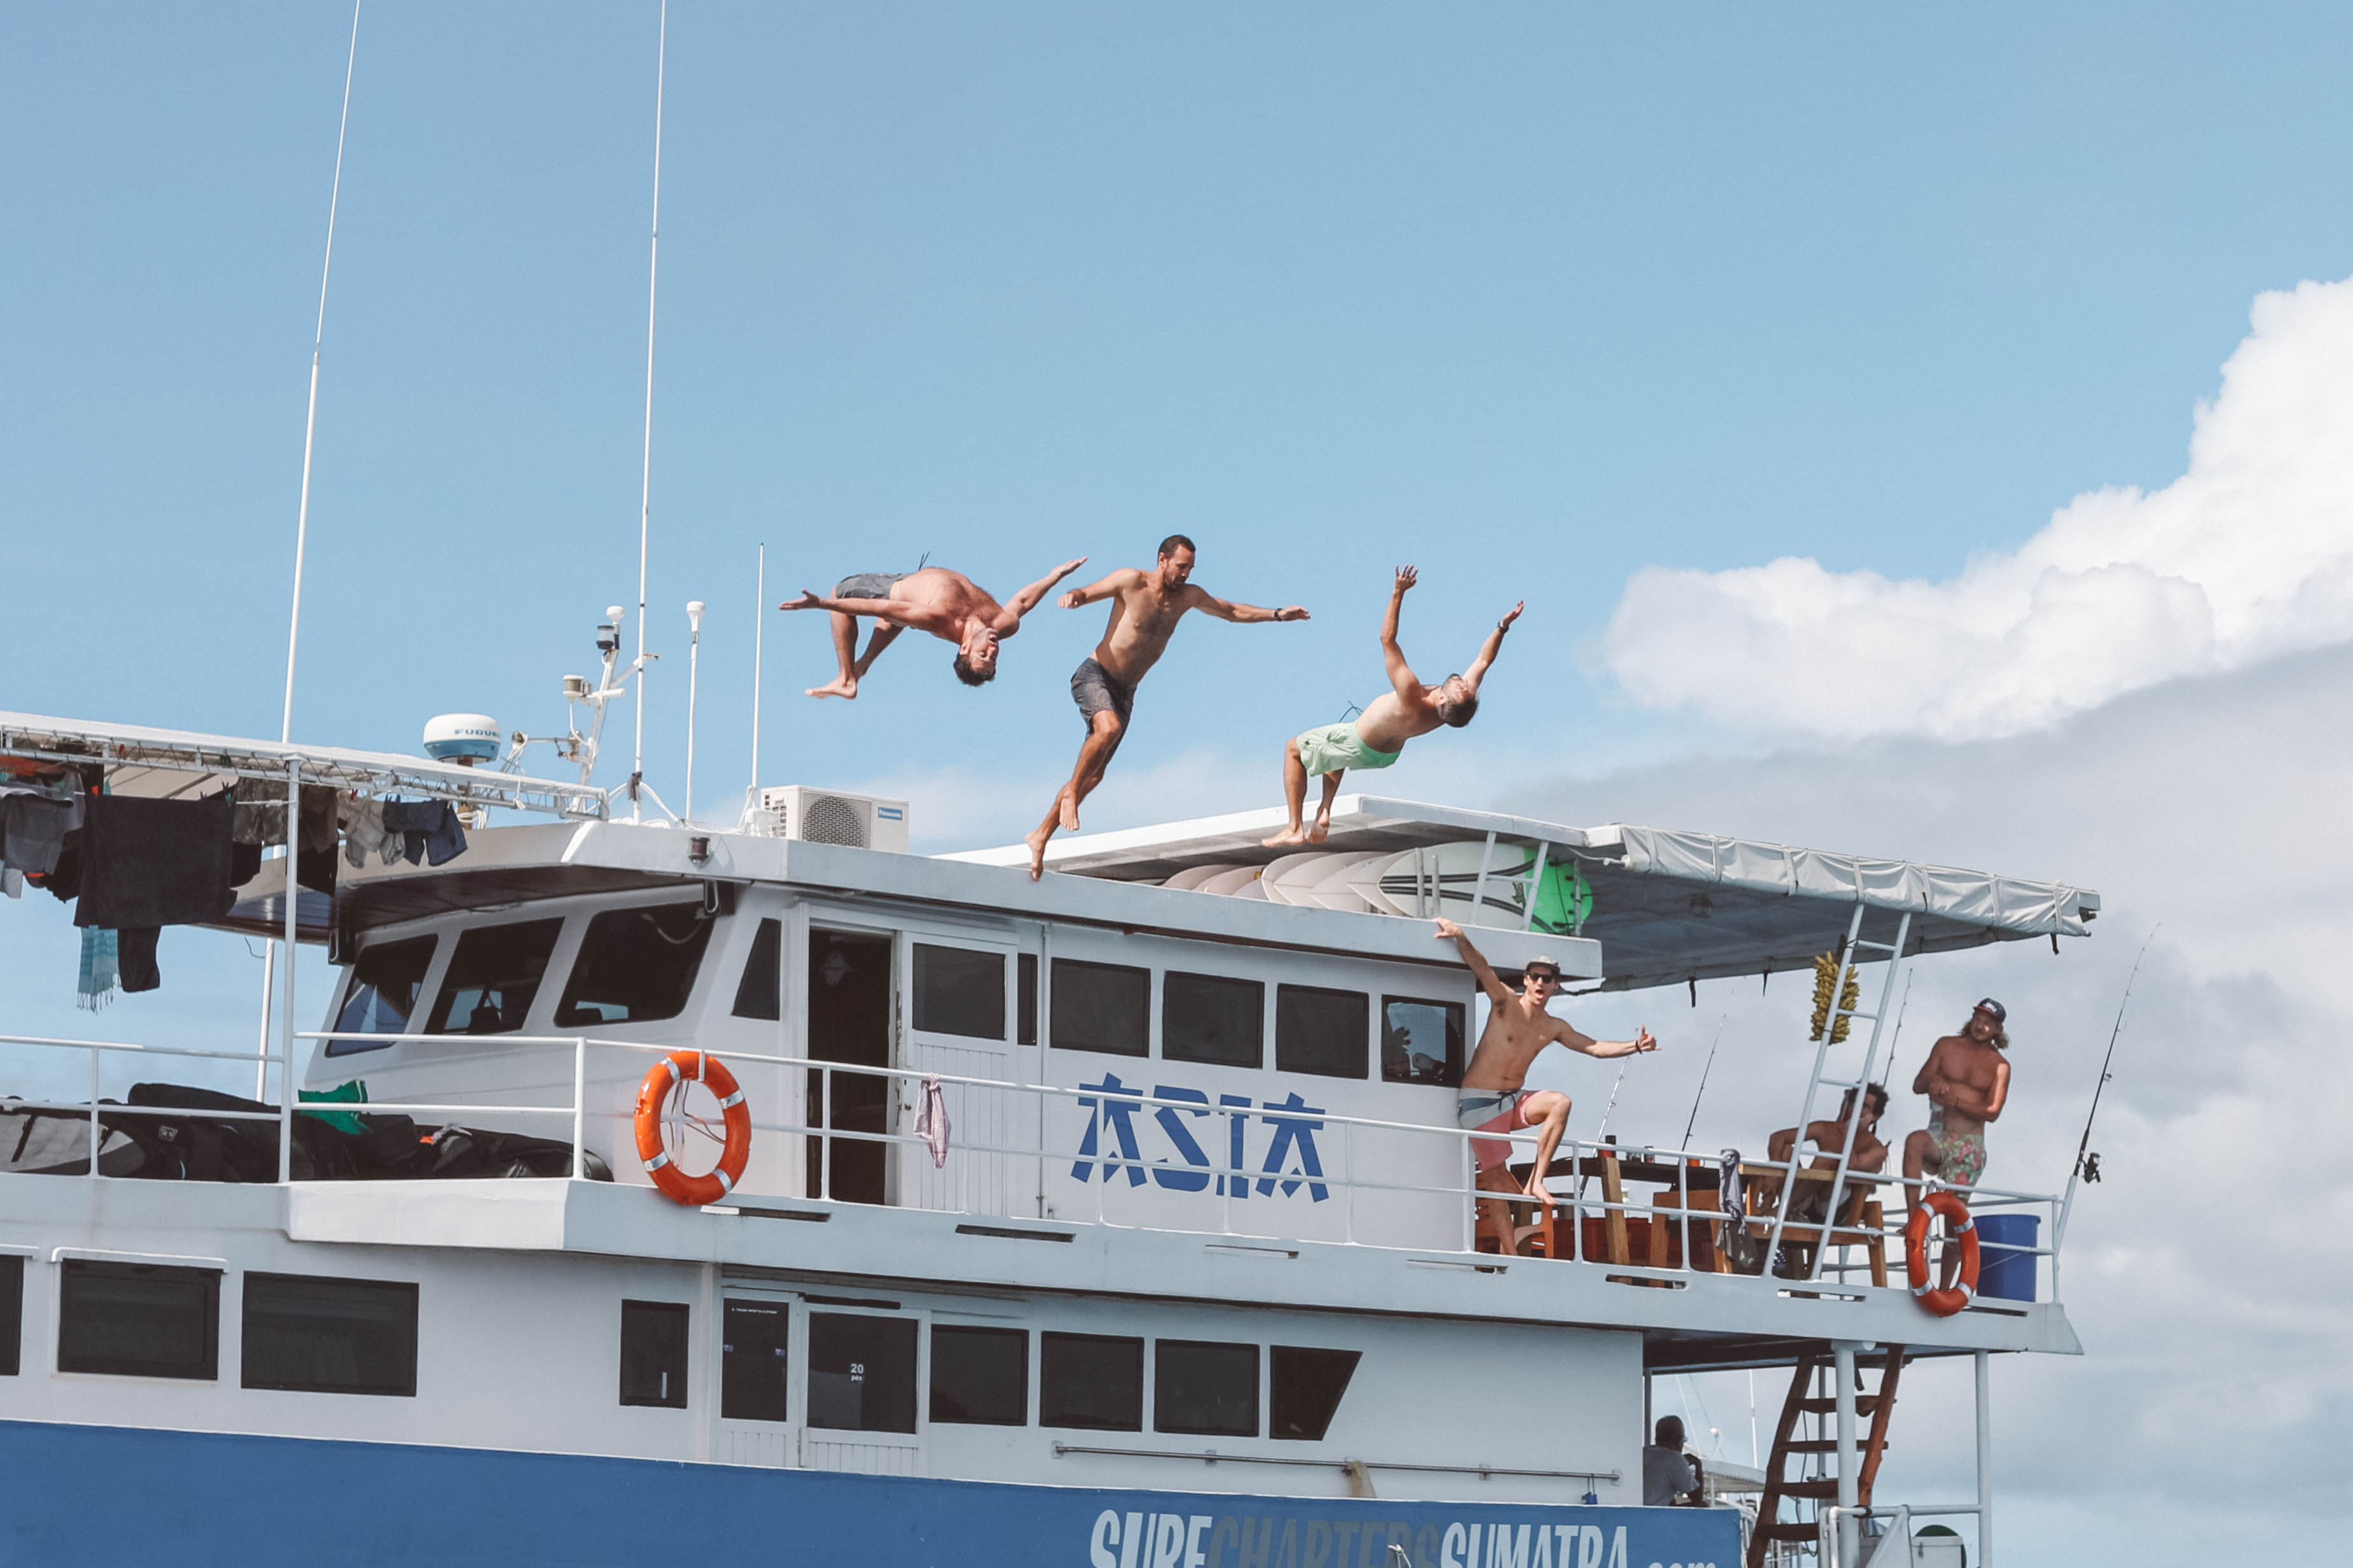 ASIA Boat Surf Charter Mentawai Side View Jumps.png